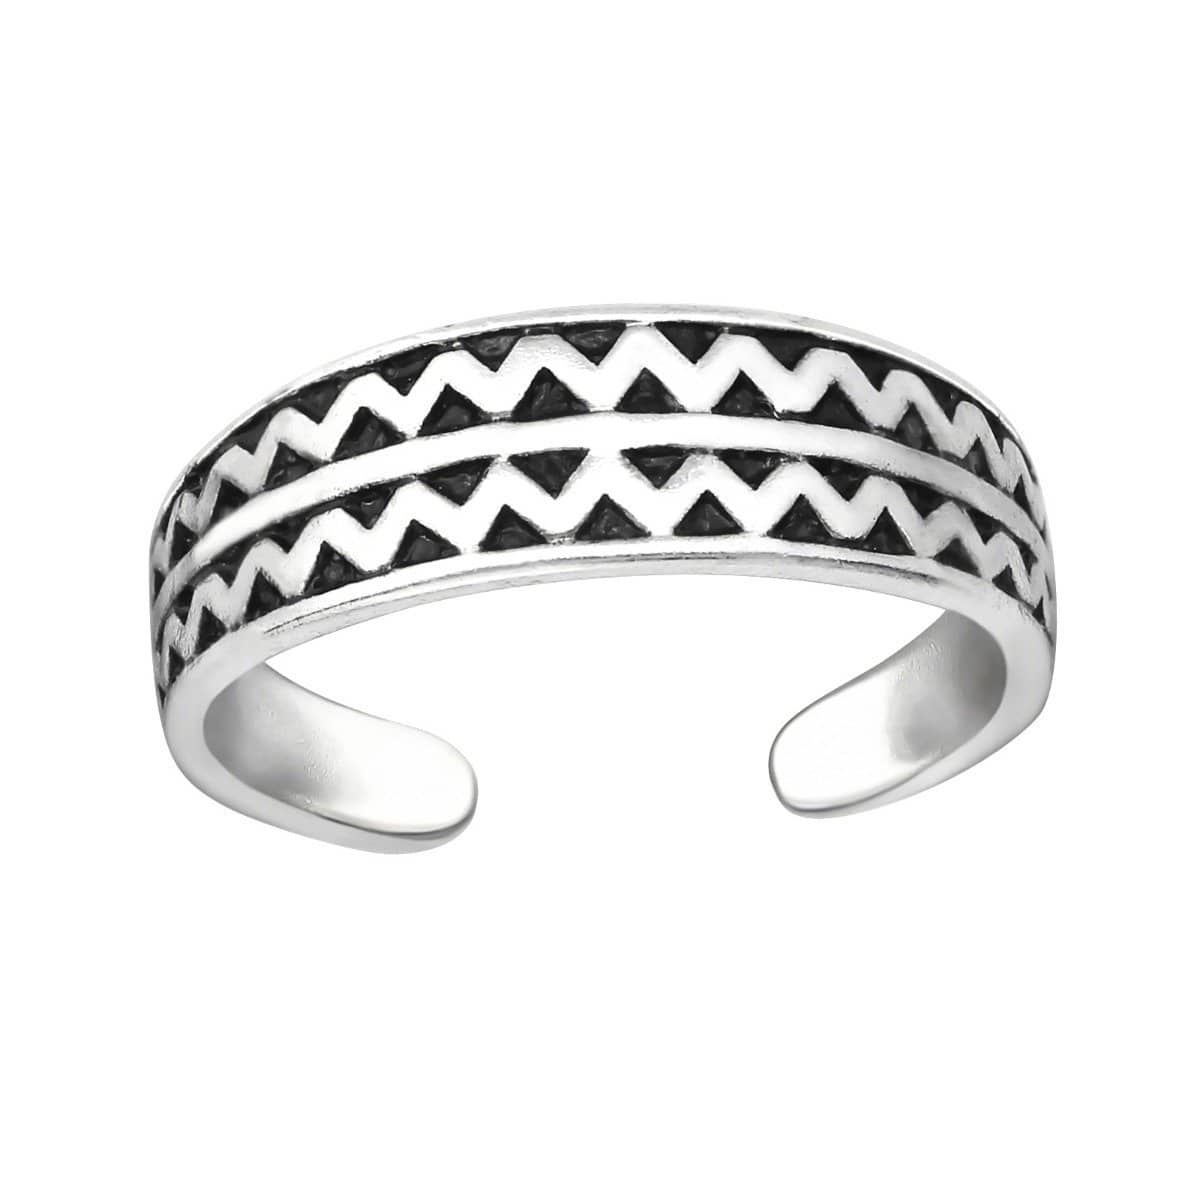 Sterling Silver ZIg Zag Patterned Toe Ring